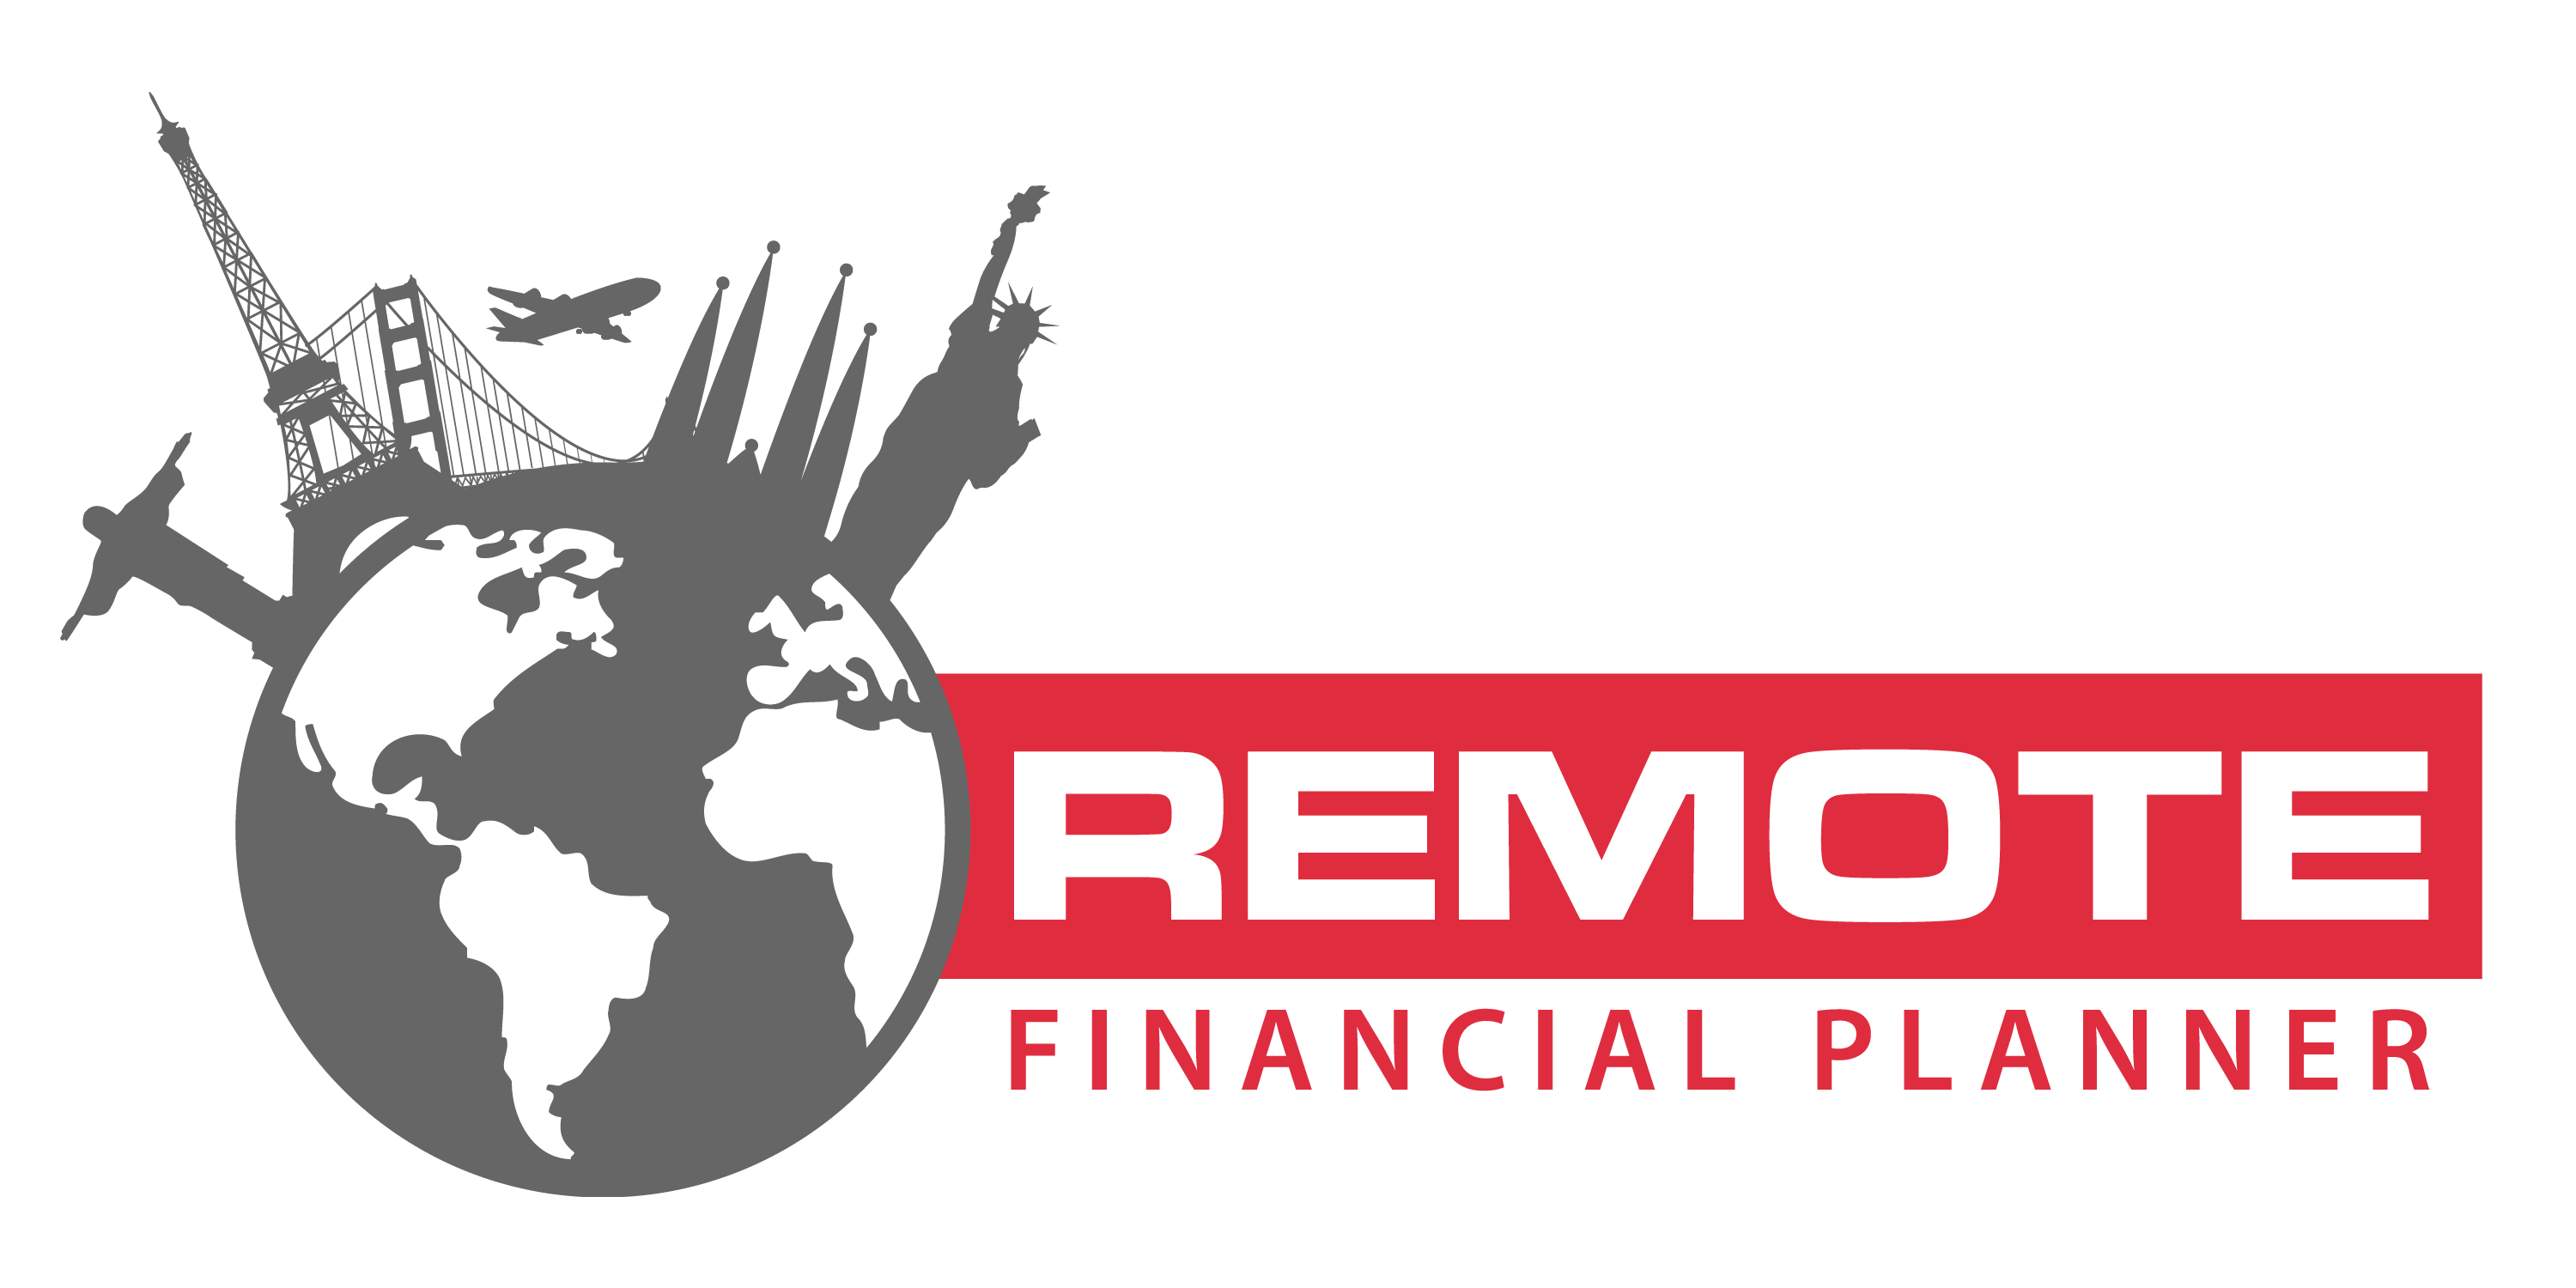 Remote Financial Planner